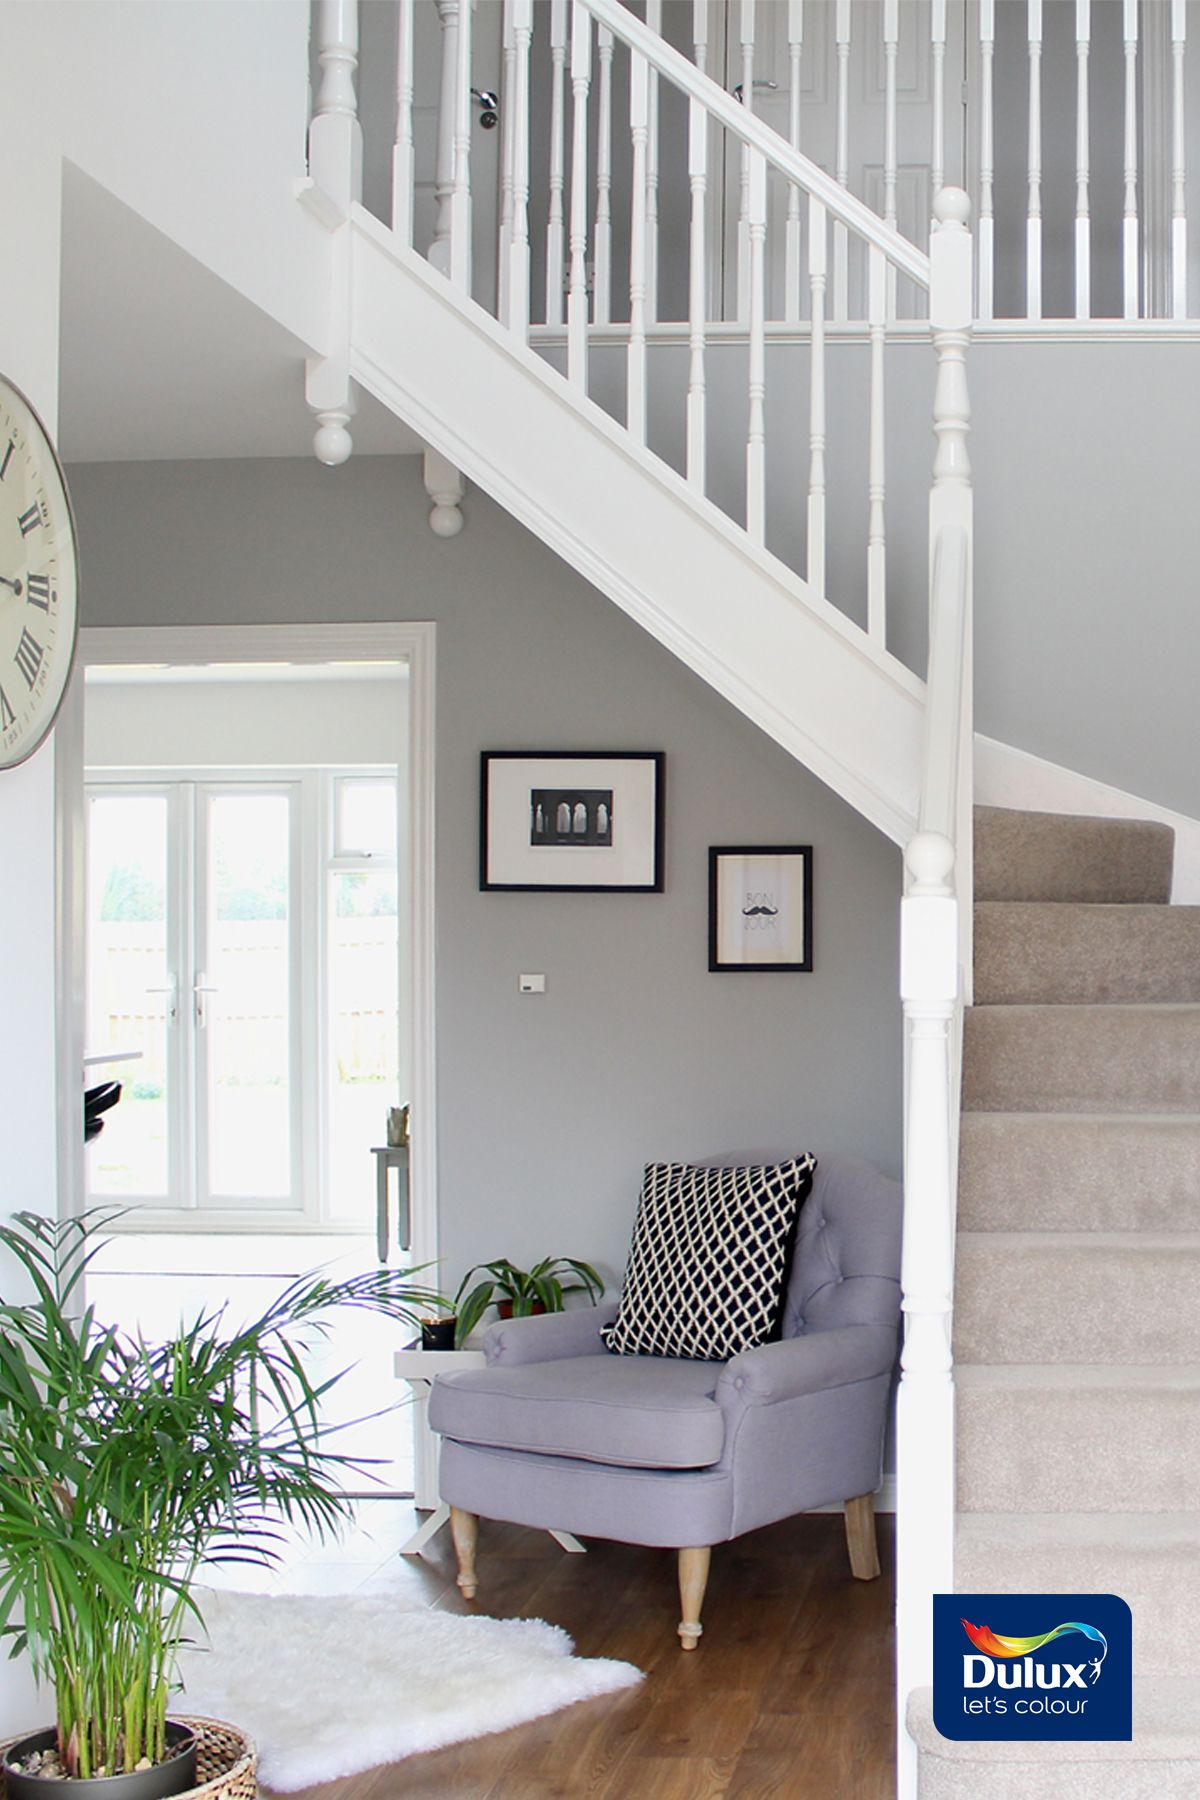 hallway paint ideas grey, Jess created this stylish hallway using Dulux in Chic